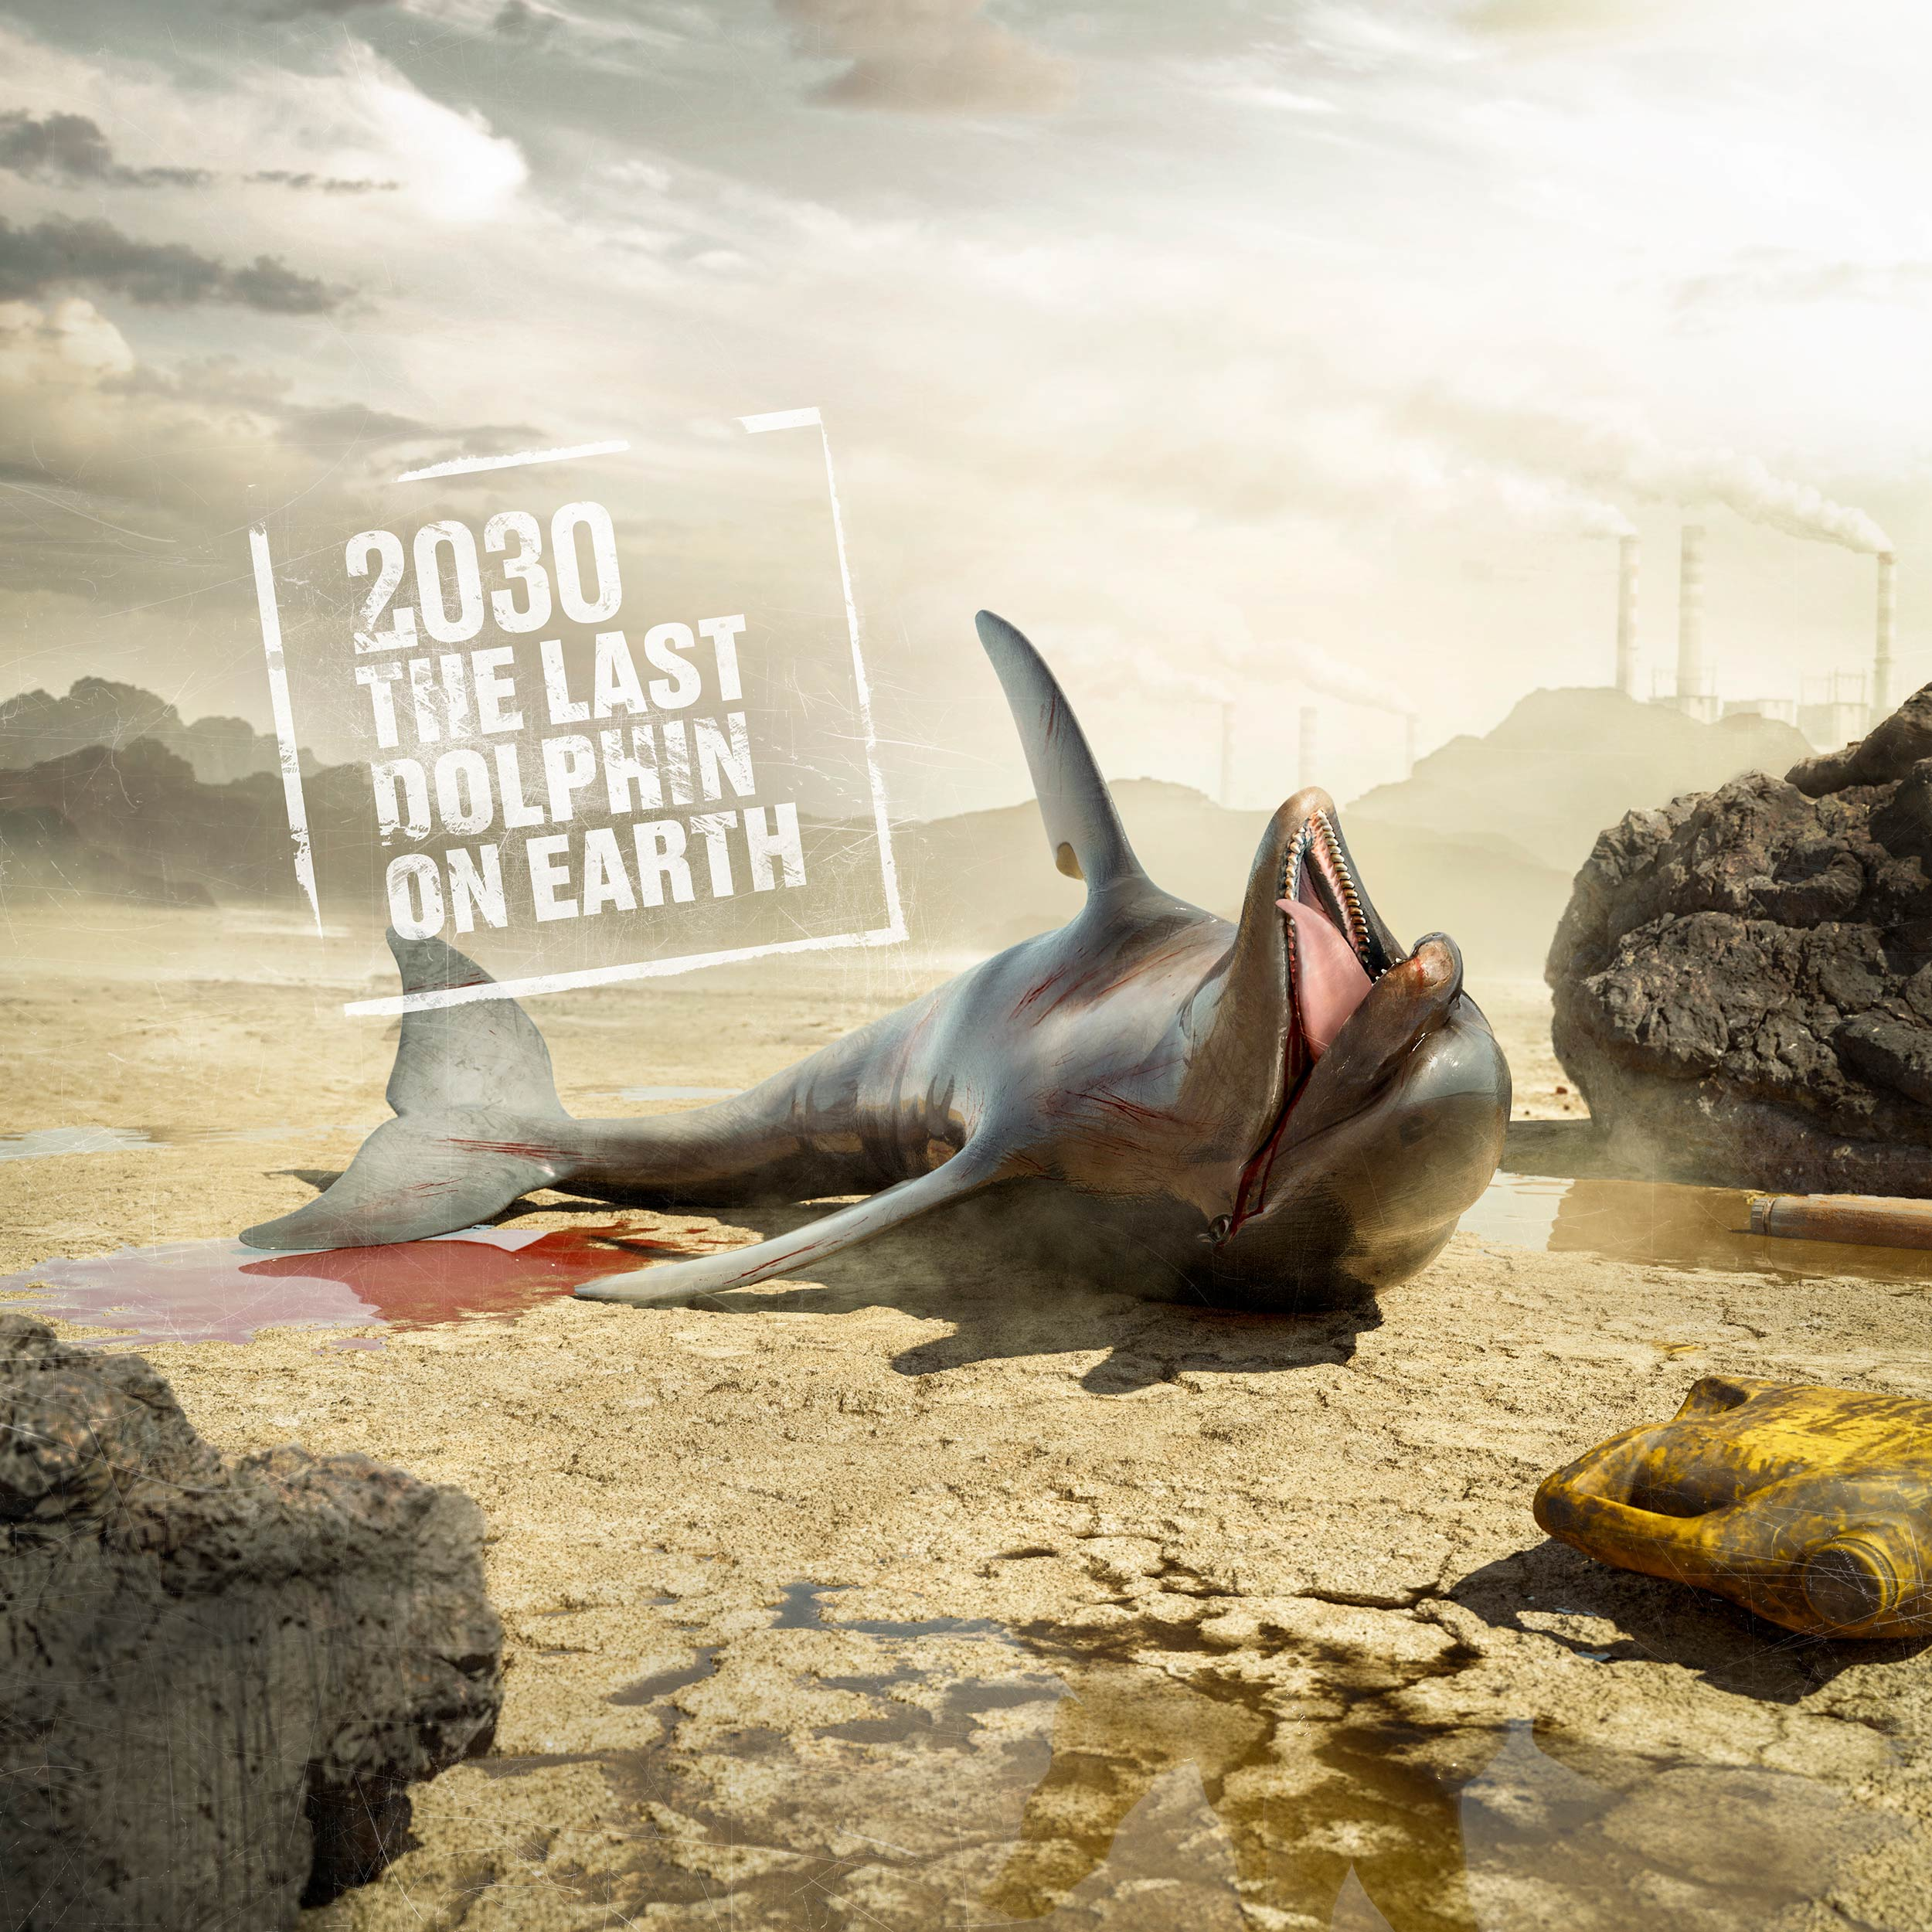 2030: The last dolphin on earth